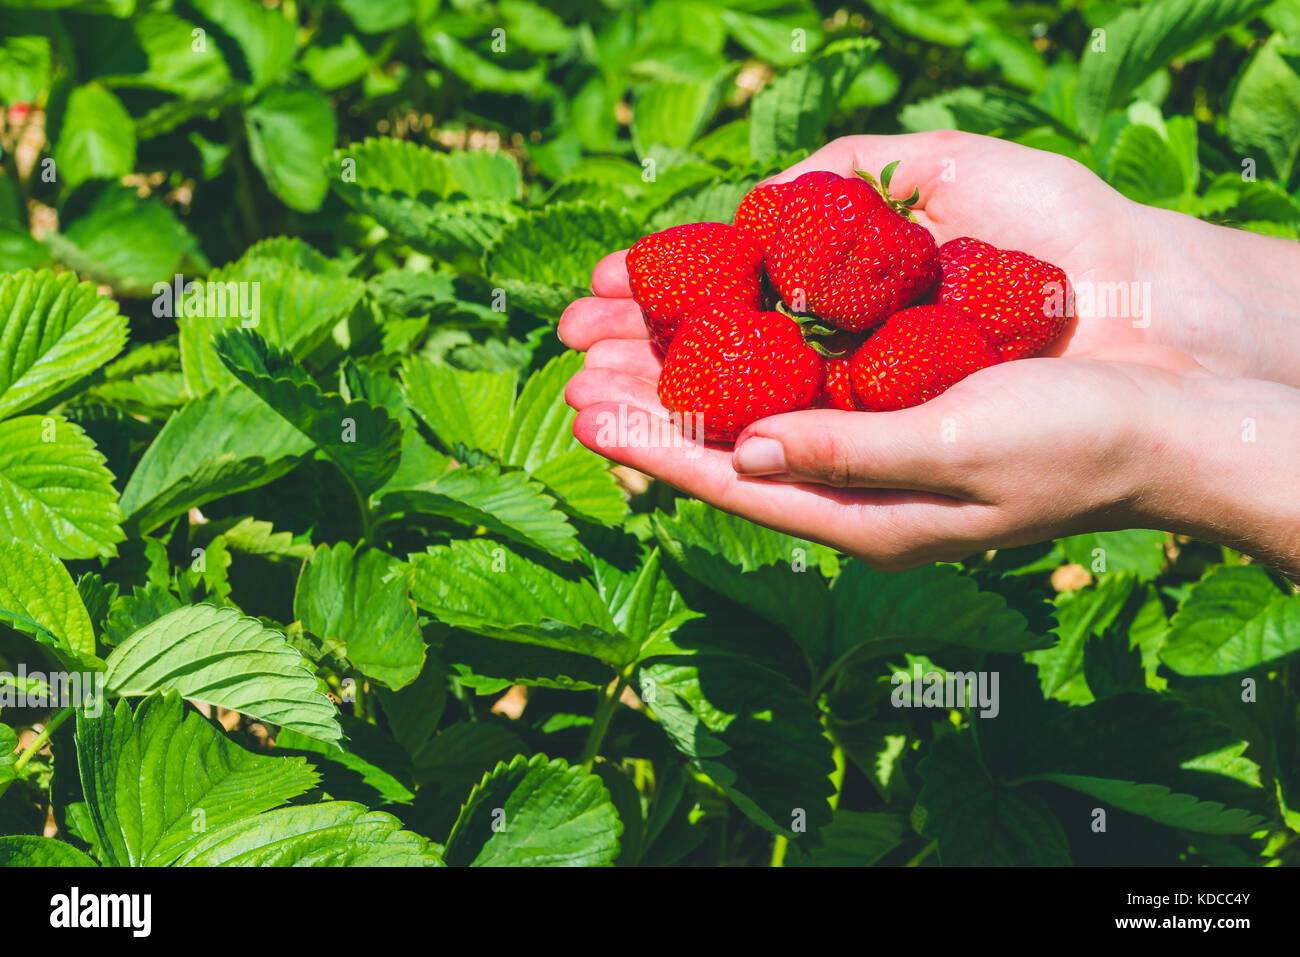 Fresh picked delicious strawberries held in hands over strawberry plants - Stock Image